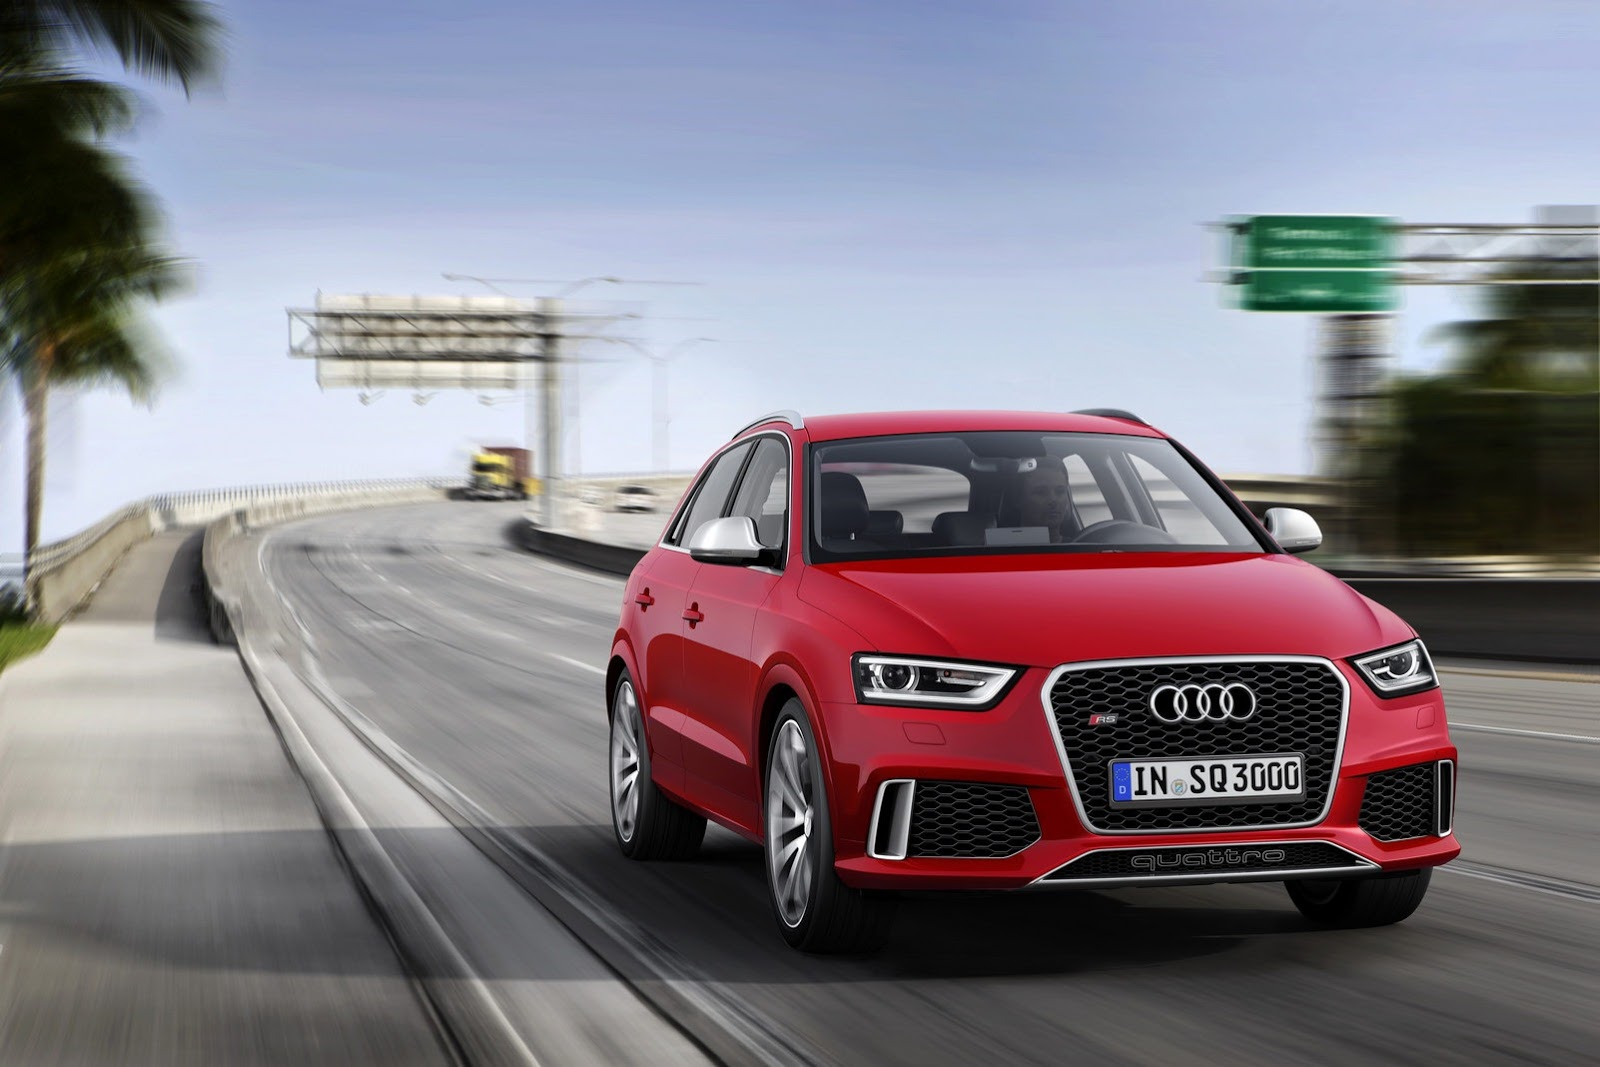 Order books for the Audi RS Q3 will open this summer. The first